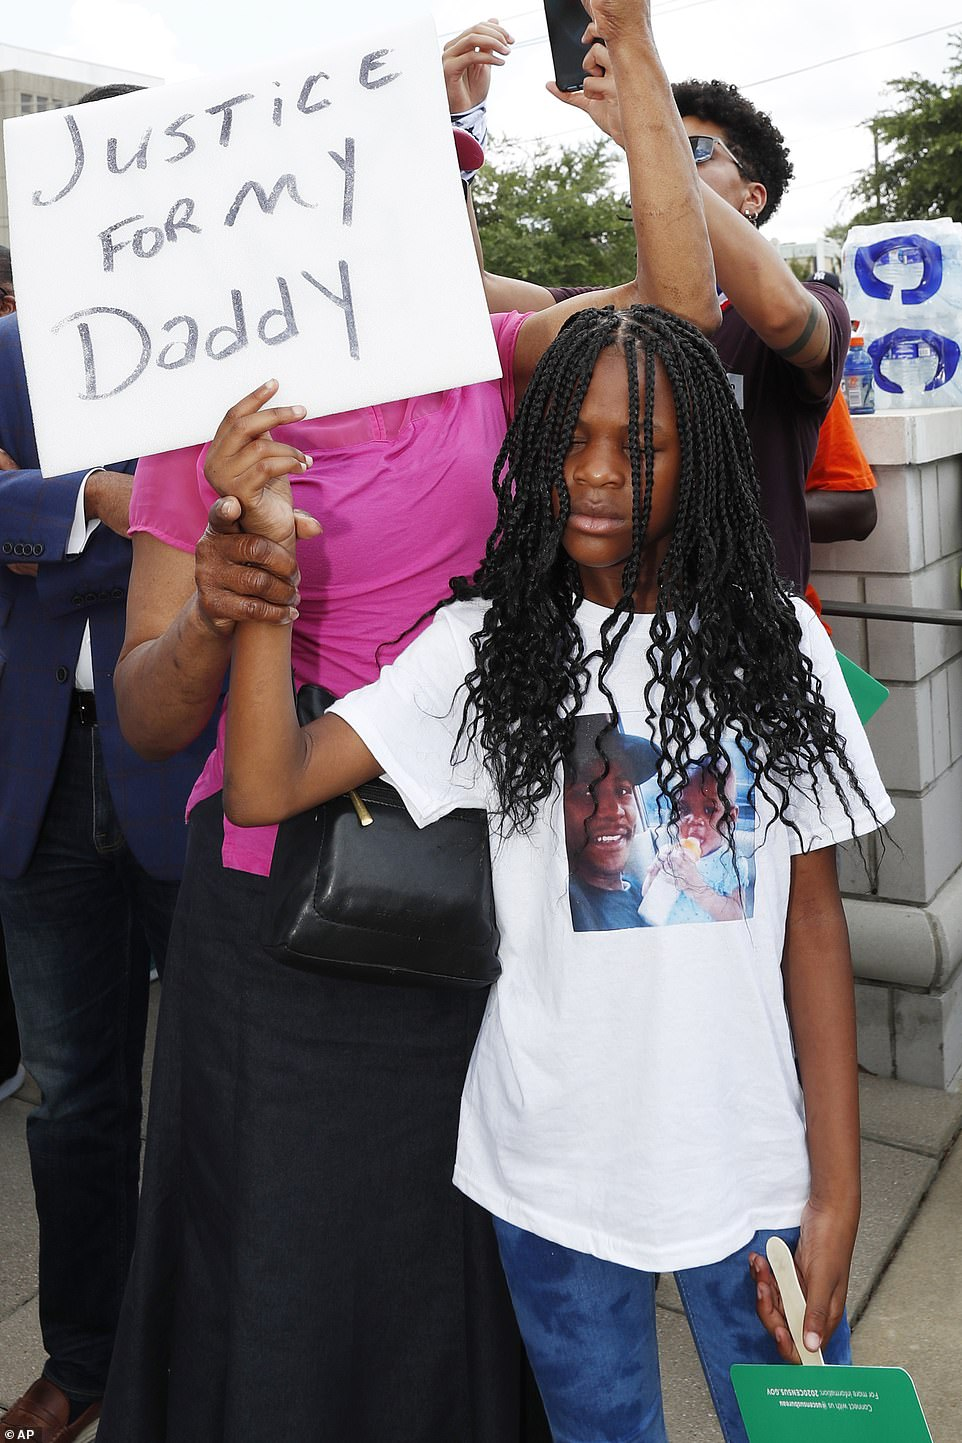 29284300-8393847-Makayla_Hendrick_9_holds_a_protest_sign_as_she_prays_during_a_pr-a-12_1591416764830